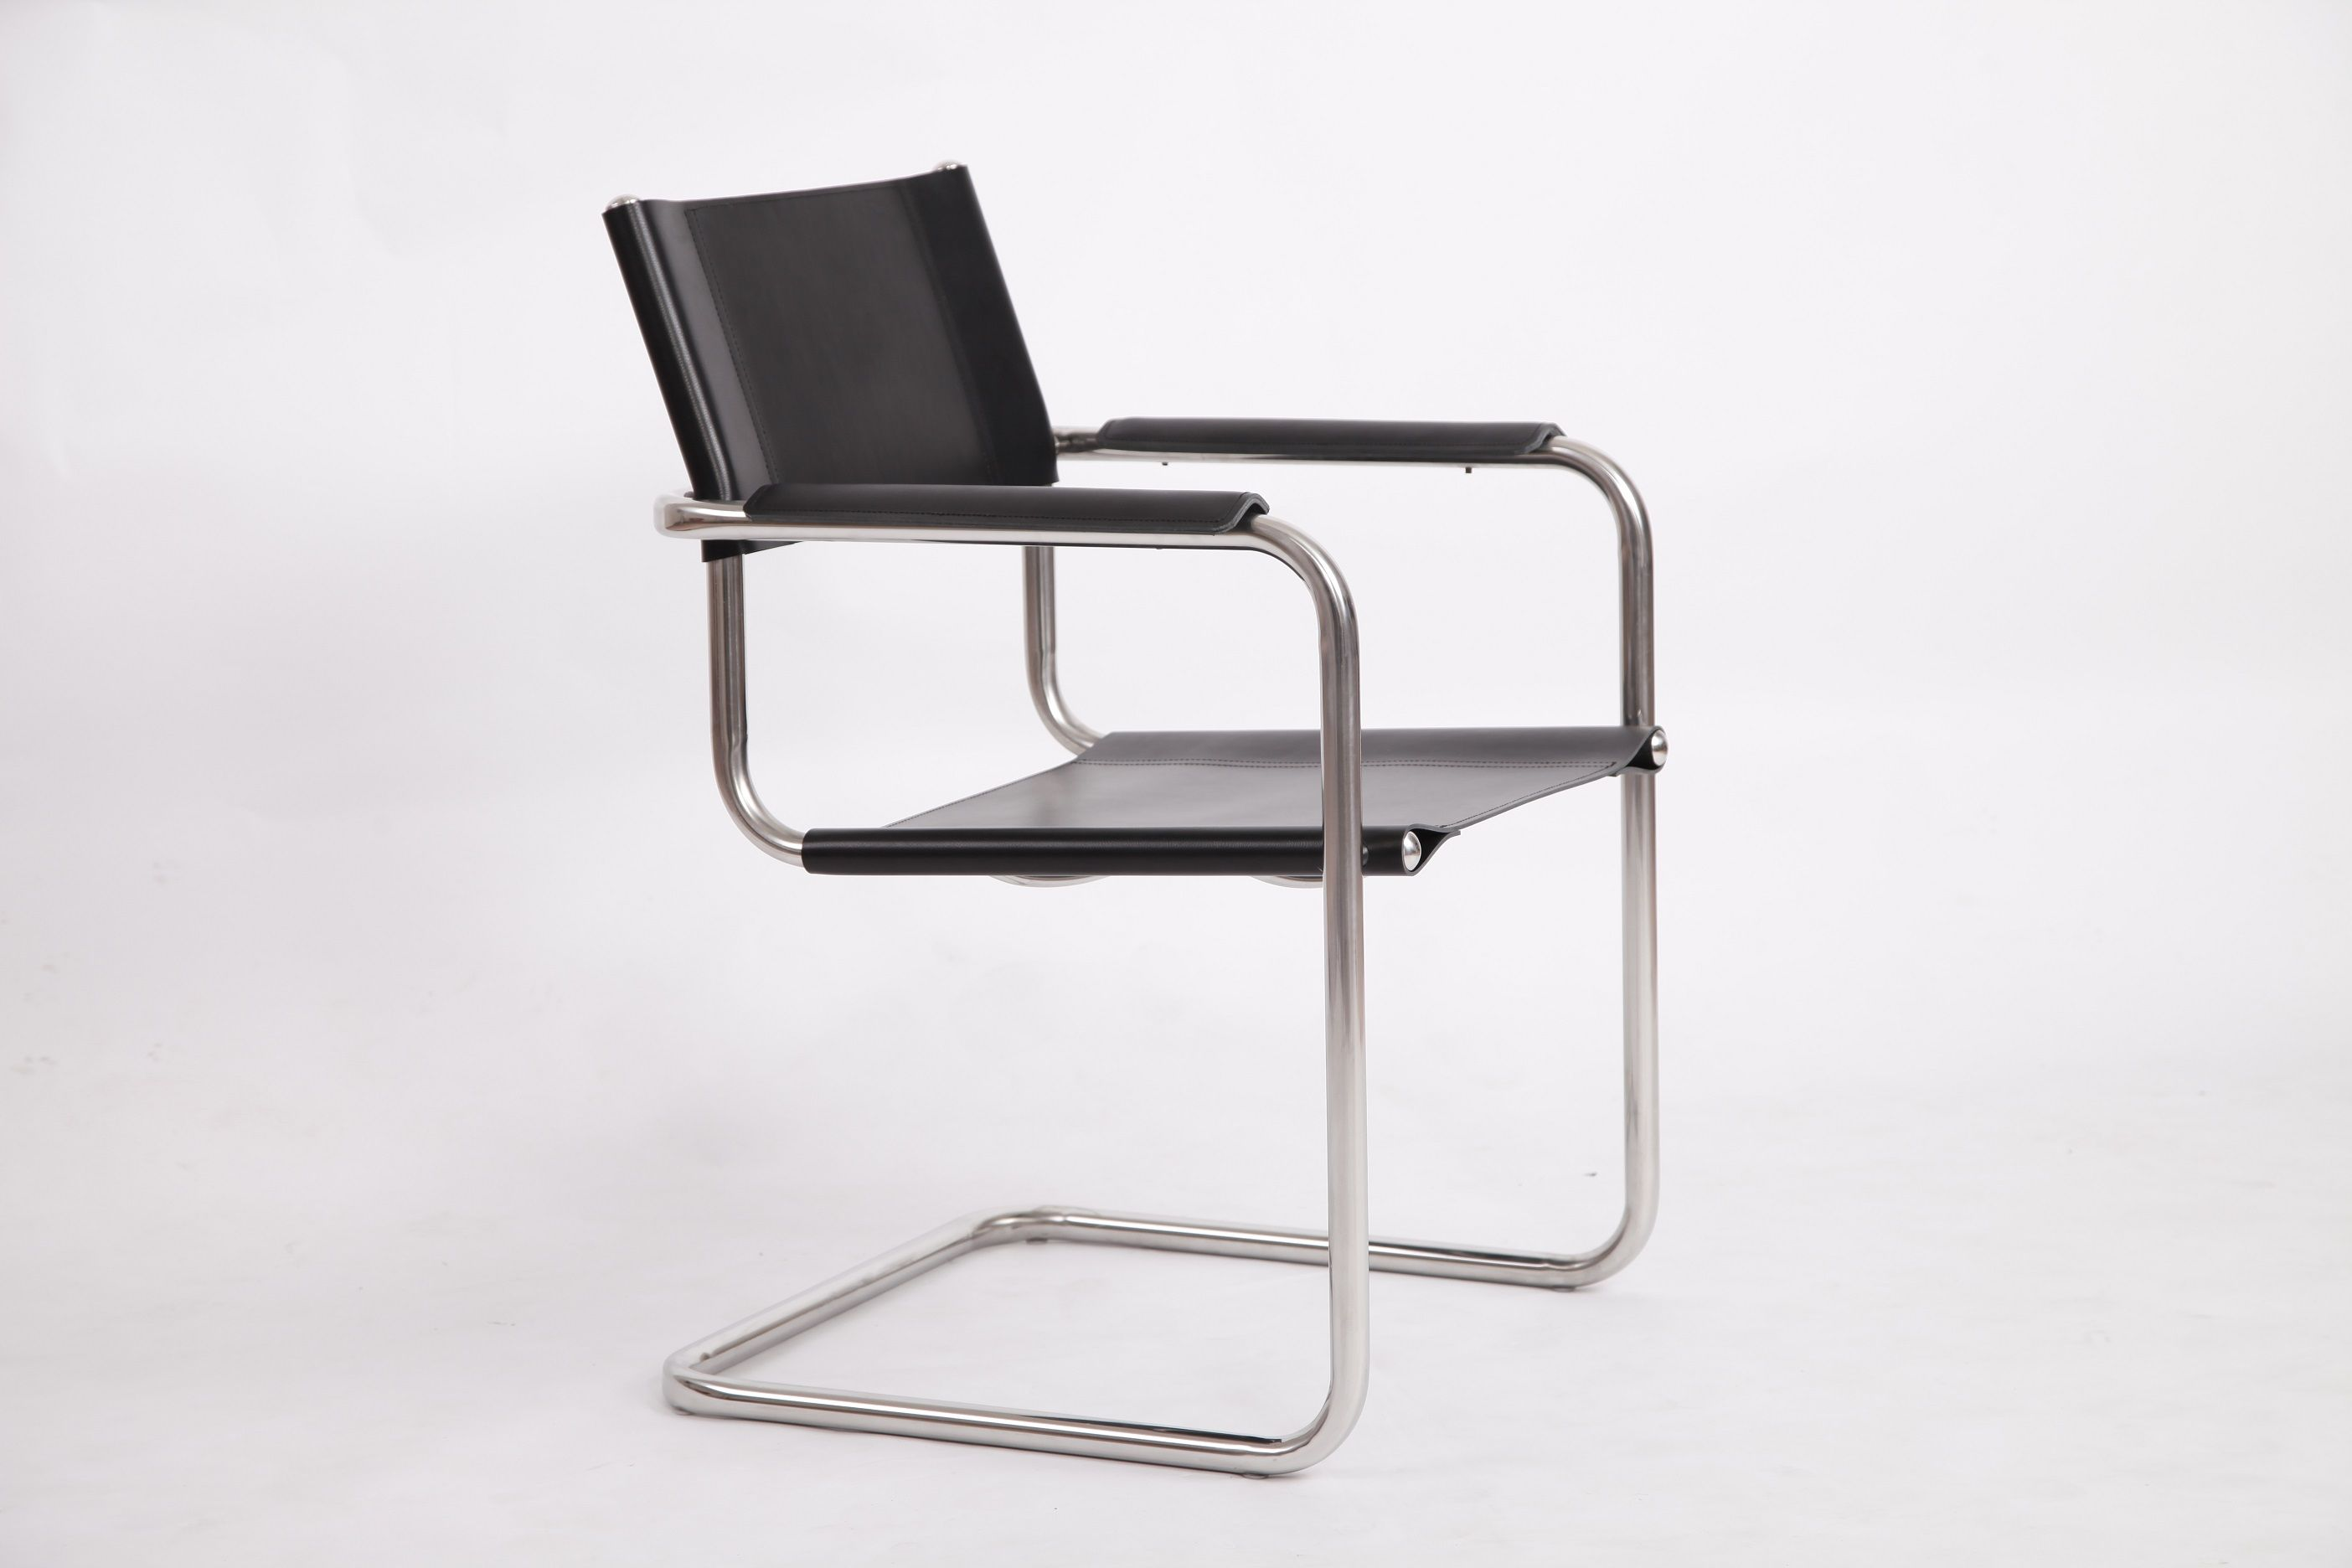 Repliche Mobili Bauhaus.Mart Stam S34 Cantilever Chair Replica Leather Dining Chair